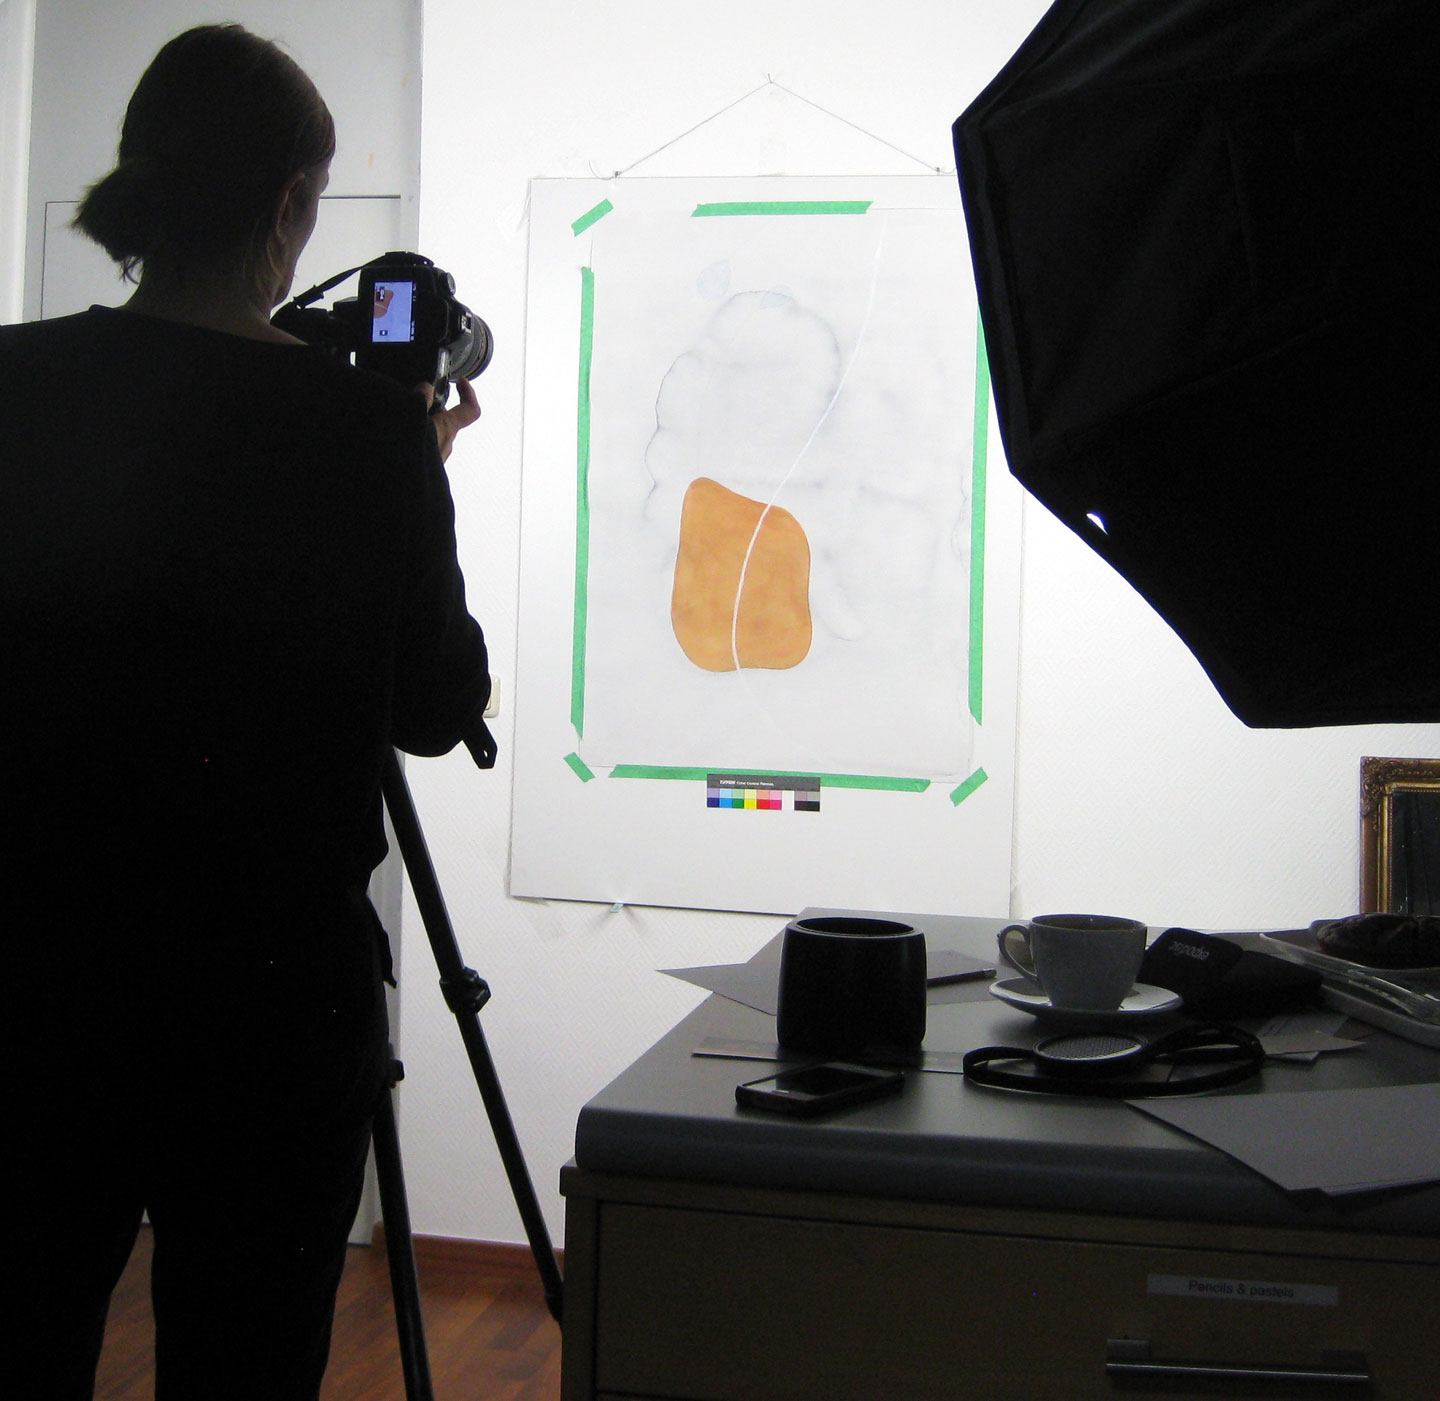 Julia Schwager photographing my work for the exhibition catalog